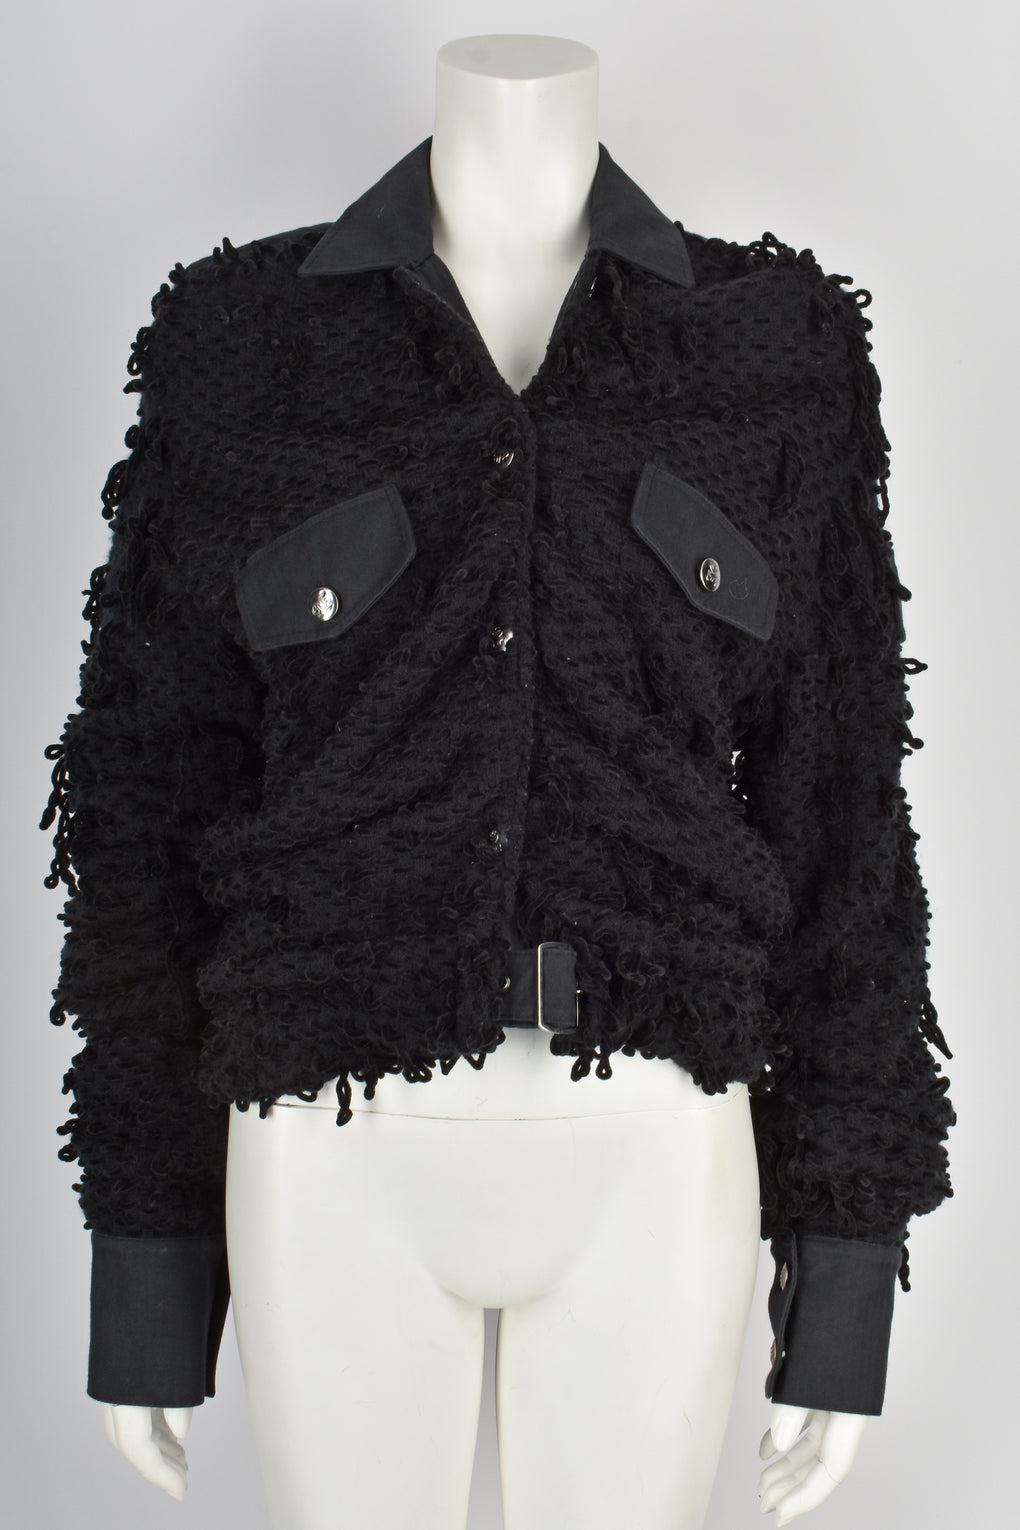 GALLIANO 2000s unisex boucle velvet jacket M-L